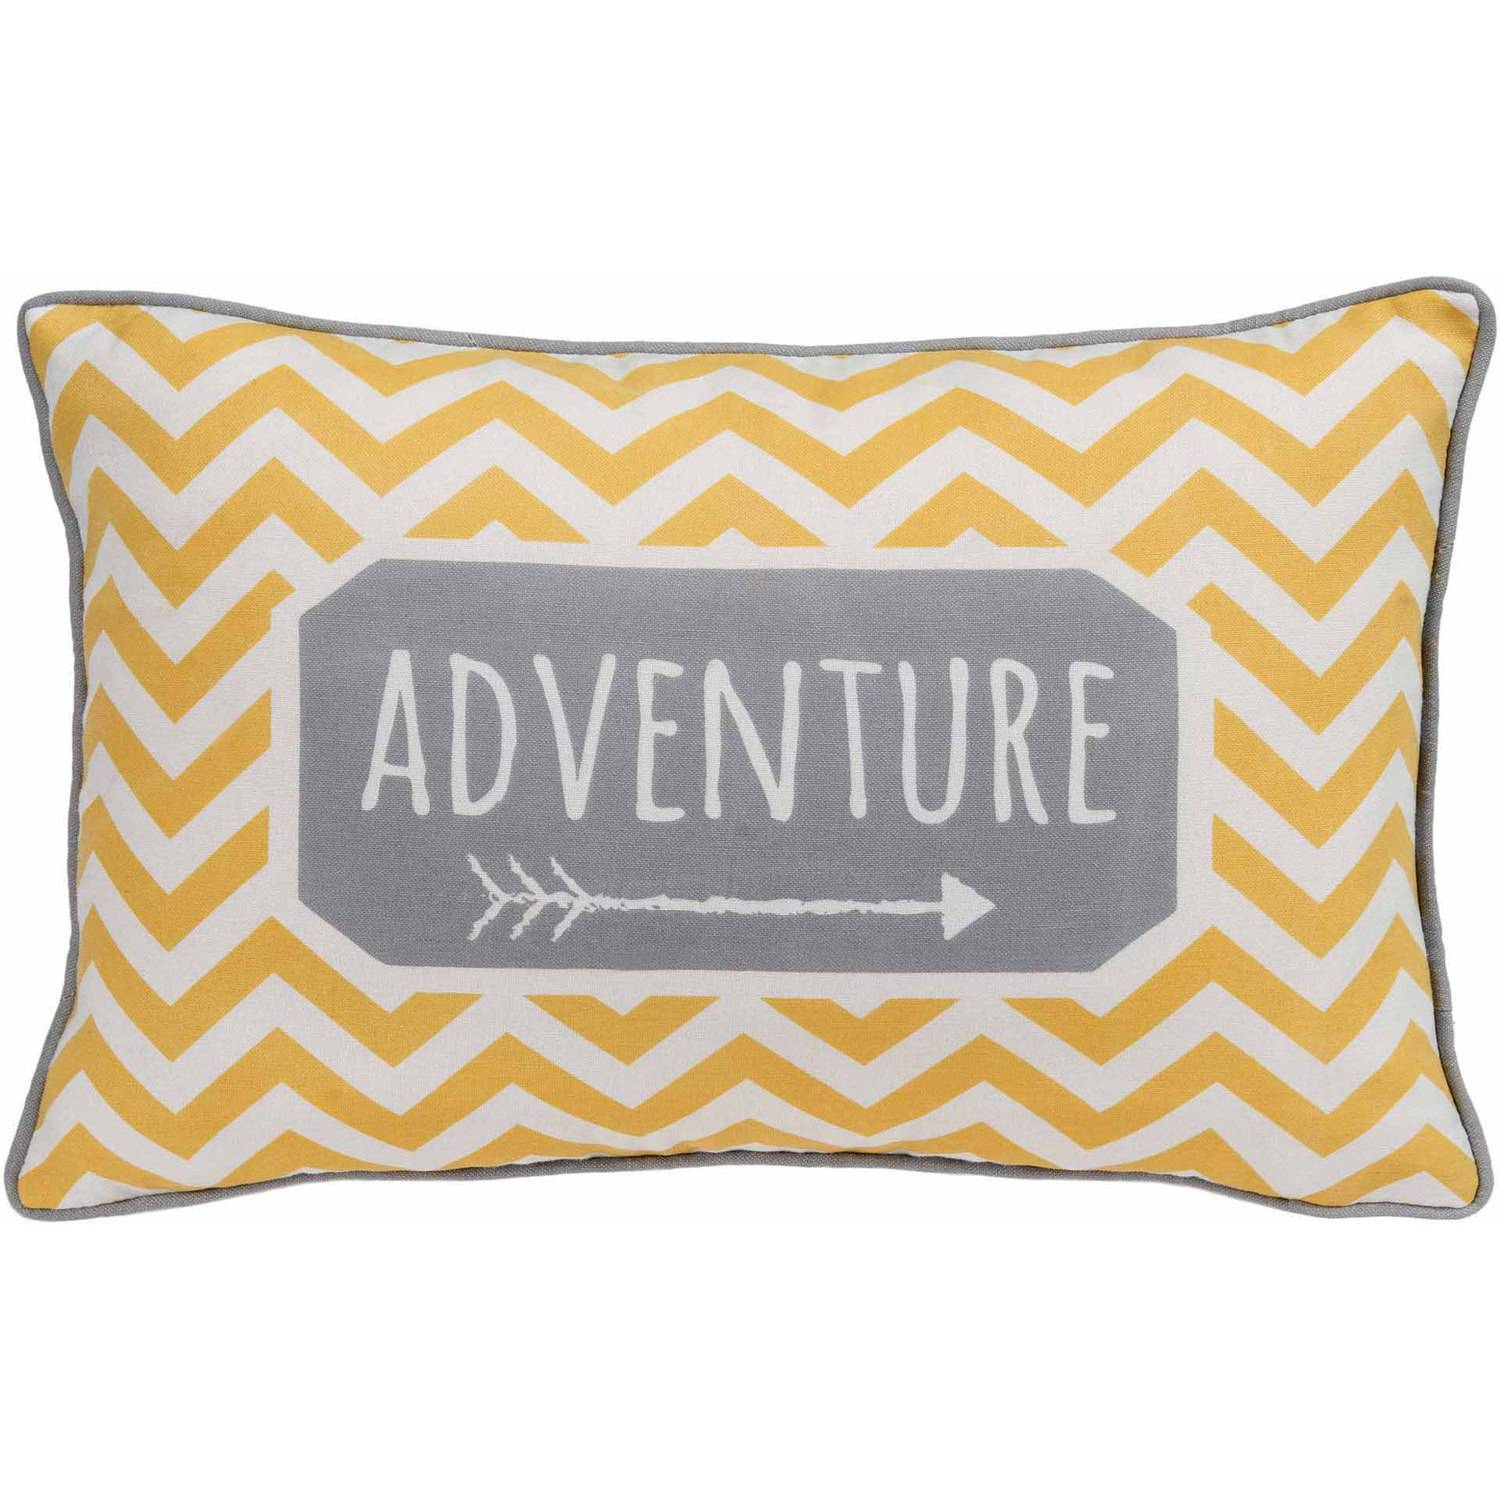 Better Homes and Gardens Chevron Adventure, Yellow and Grey Whimsical Oblong Pillow with Binding